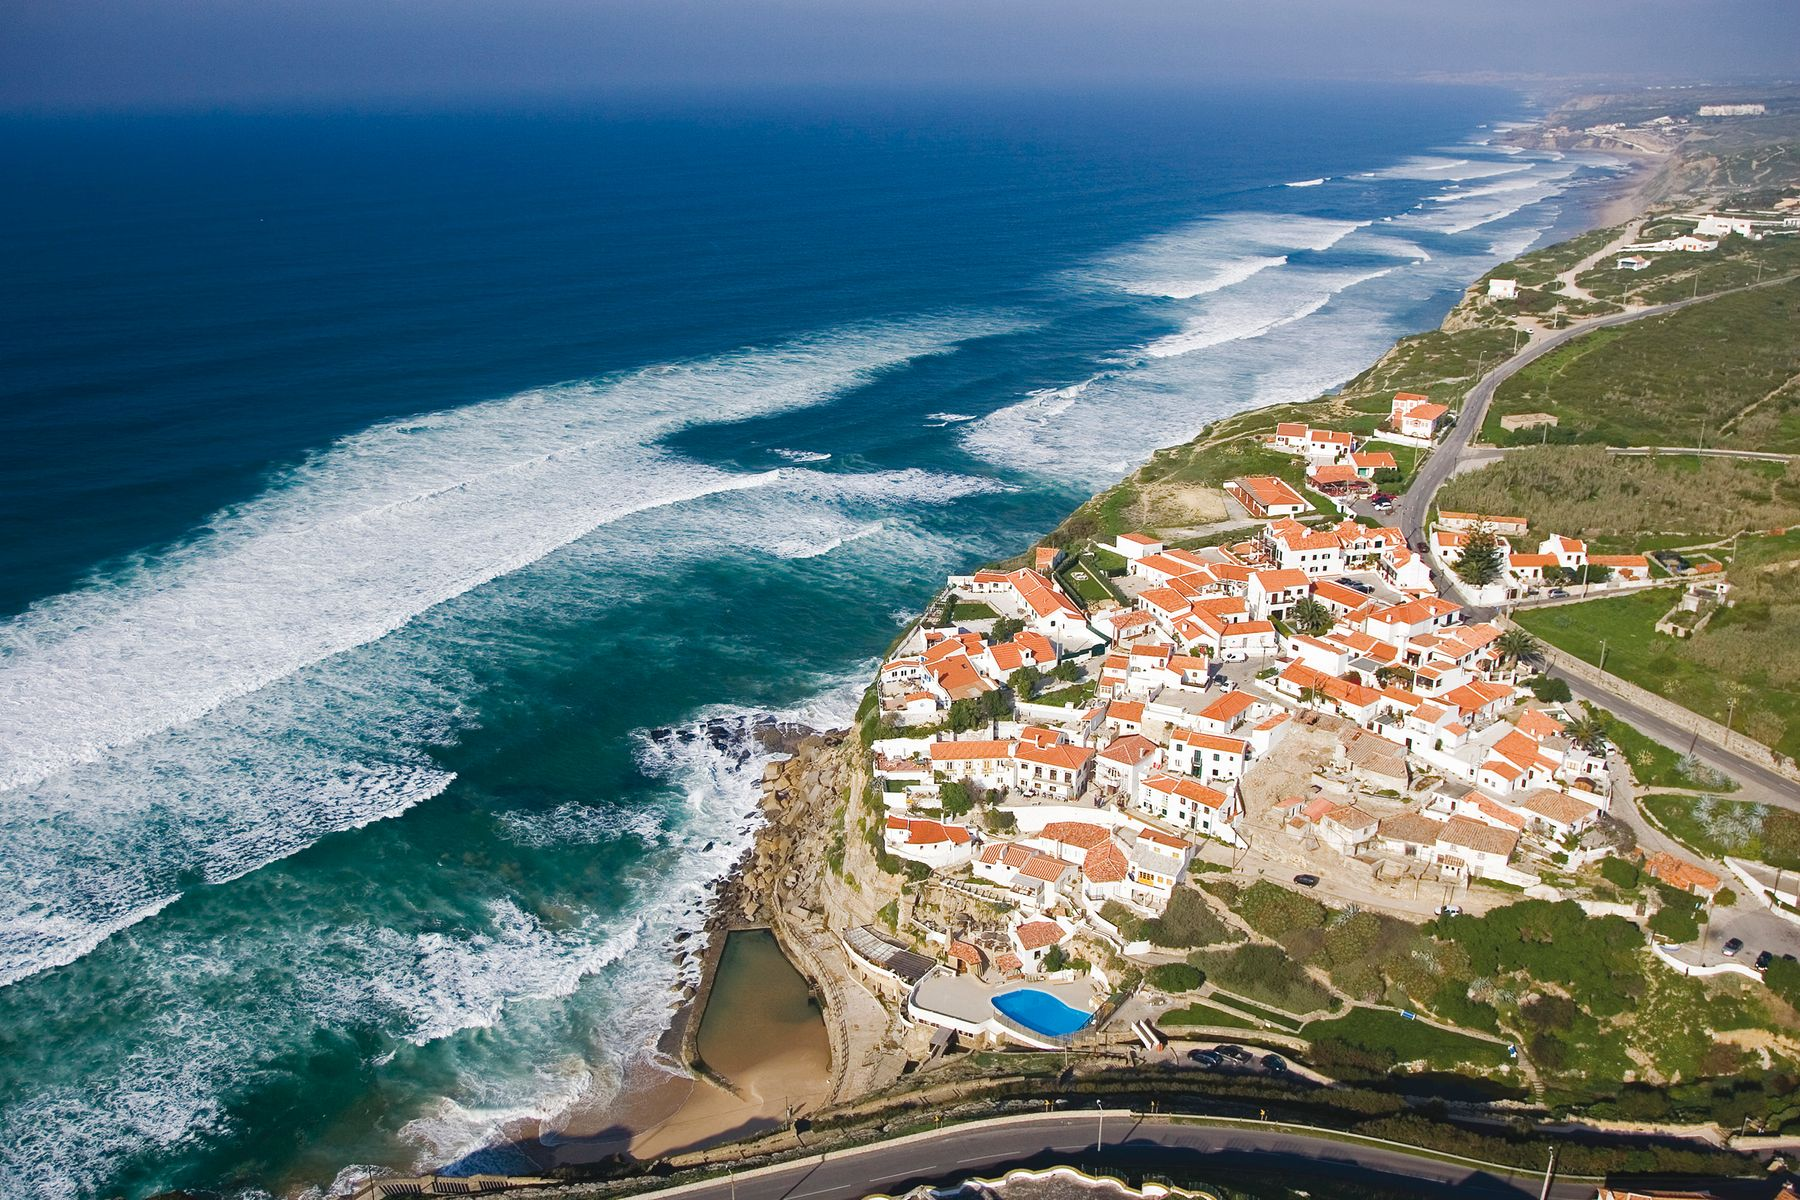 Azenhas do Mar is a charming seaside town located in the municipality of Sintra, just 30 km away from Lisbon and close to Cabo da Roca and Palácio da Pena